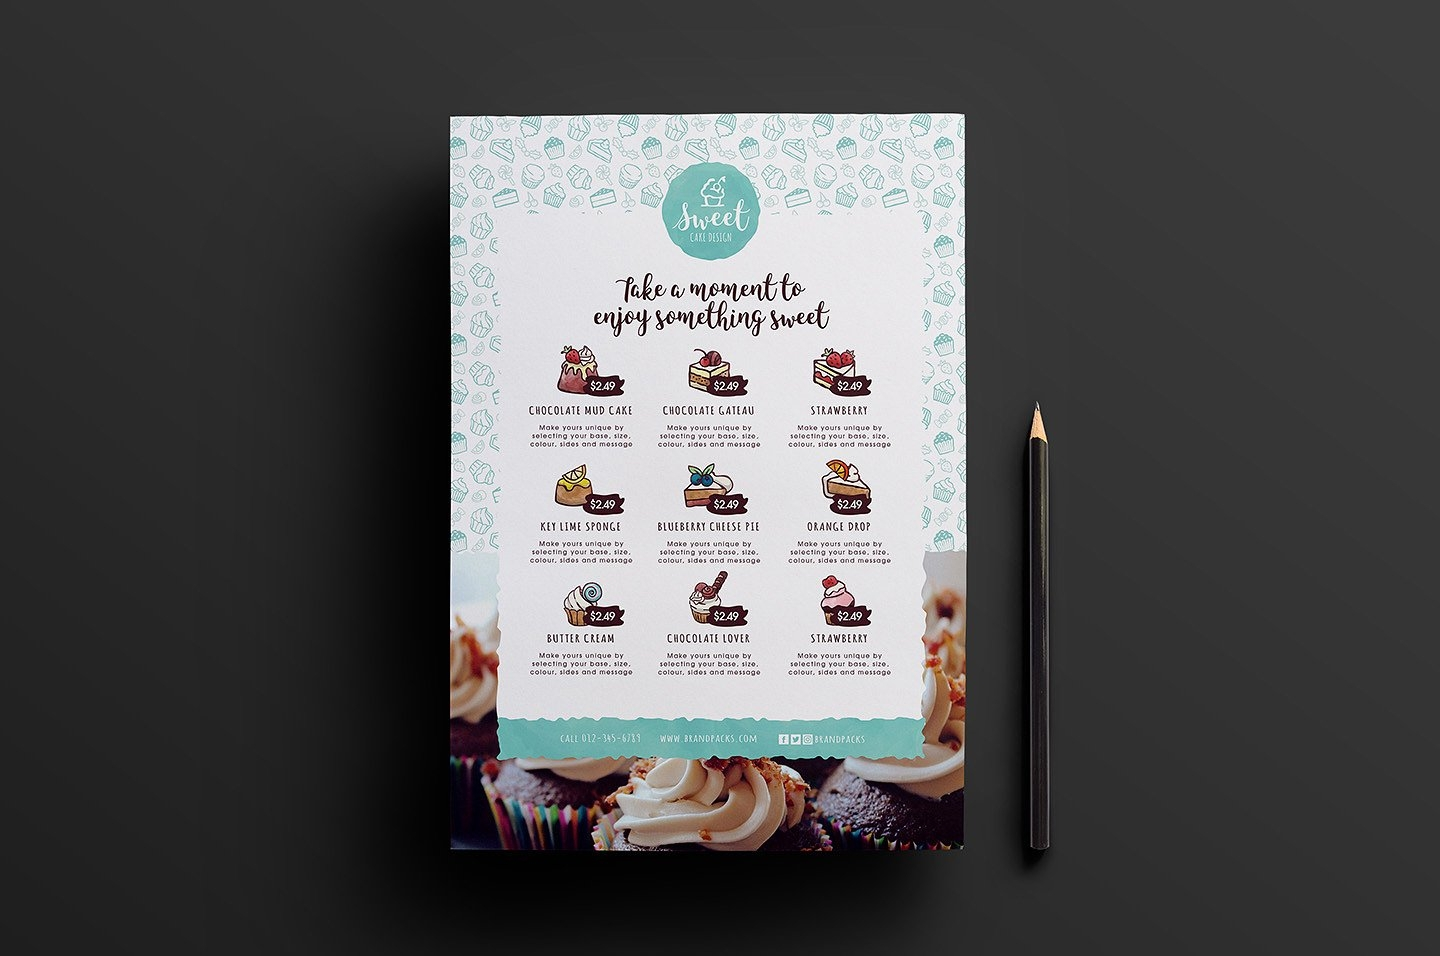 cakeshop menu design